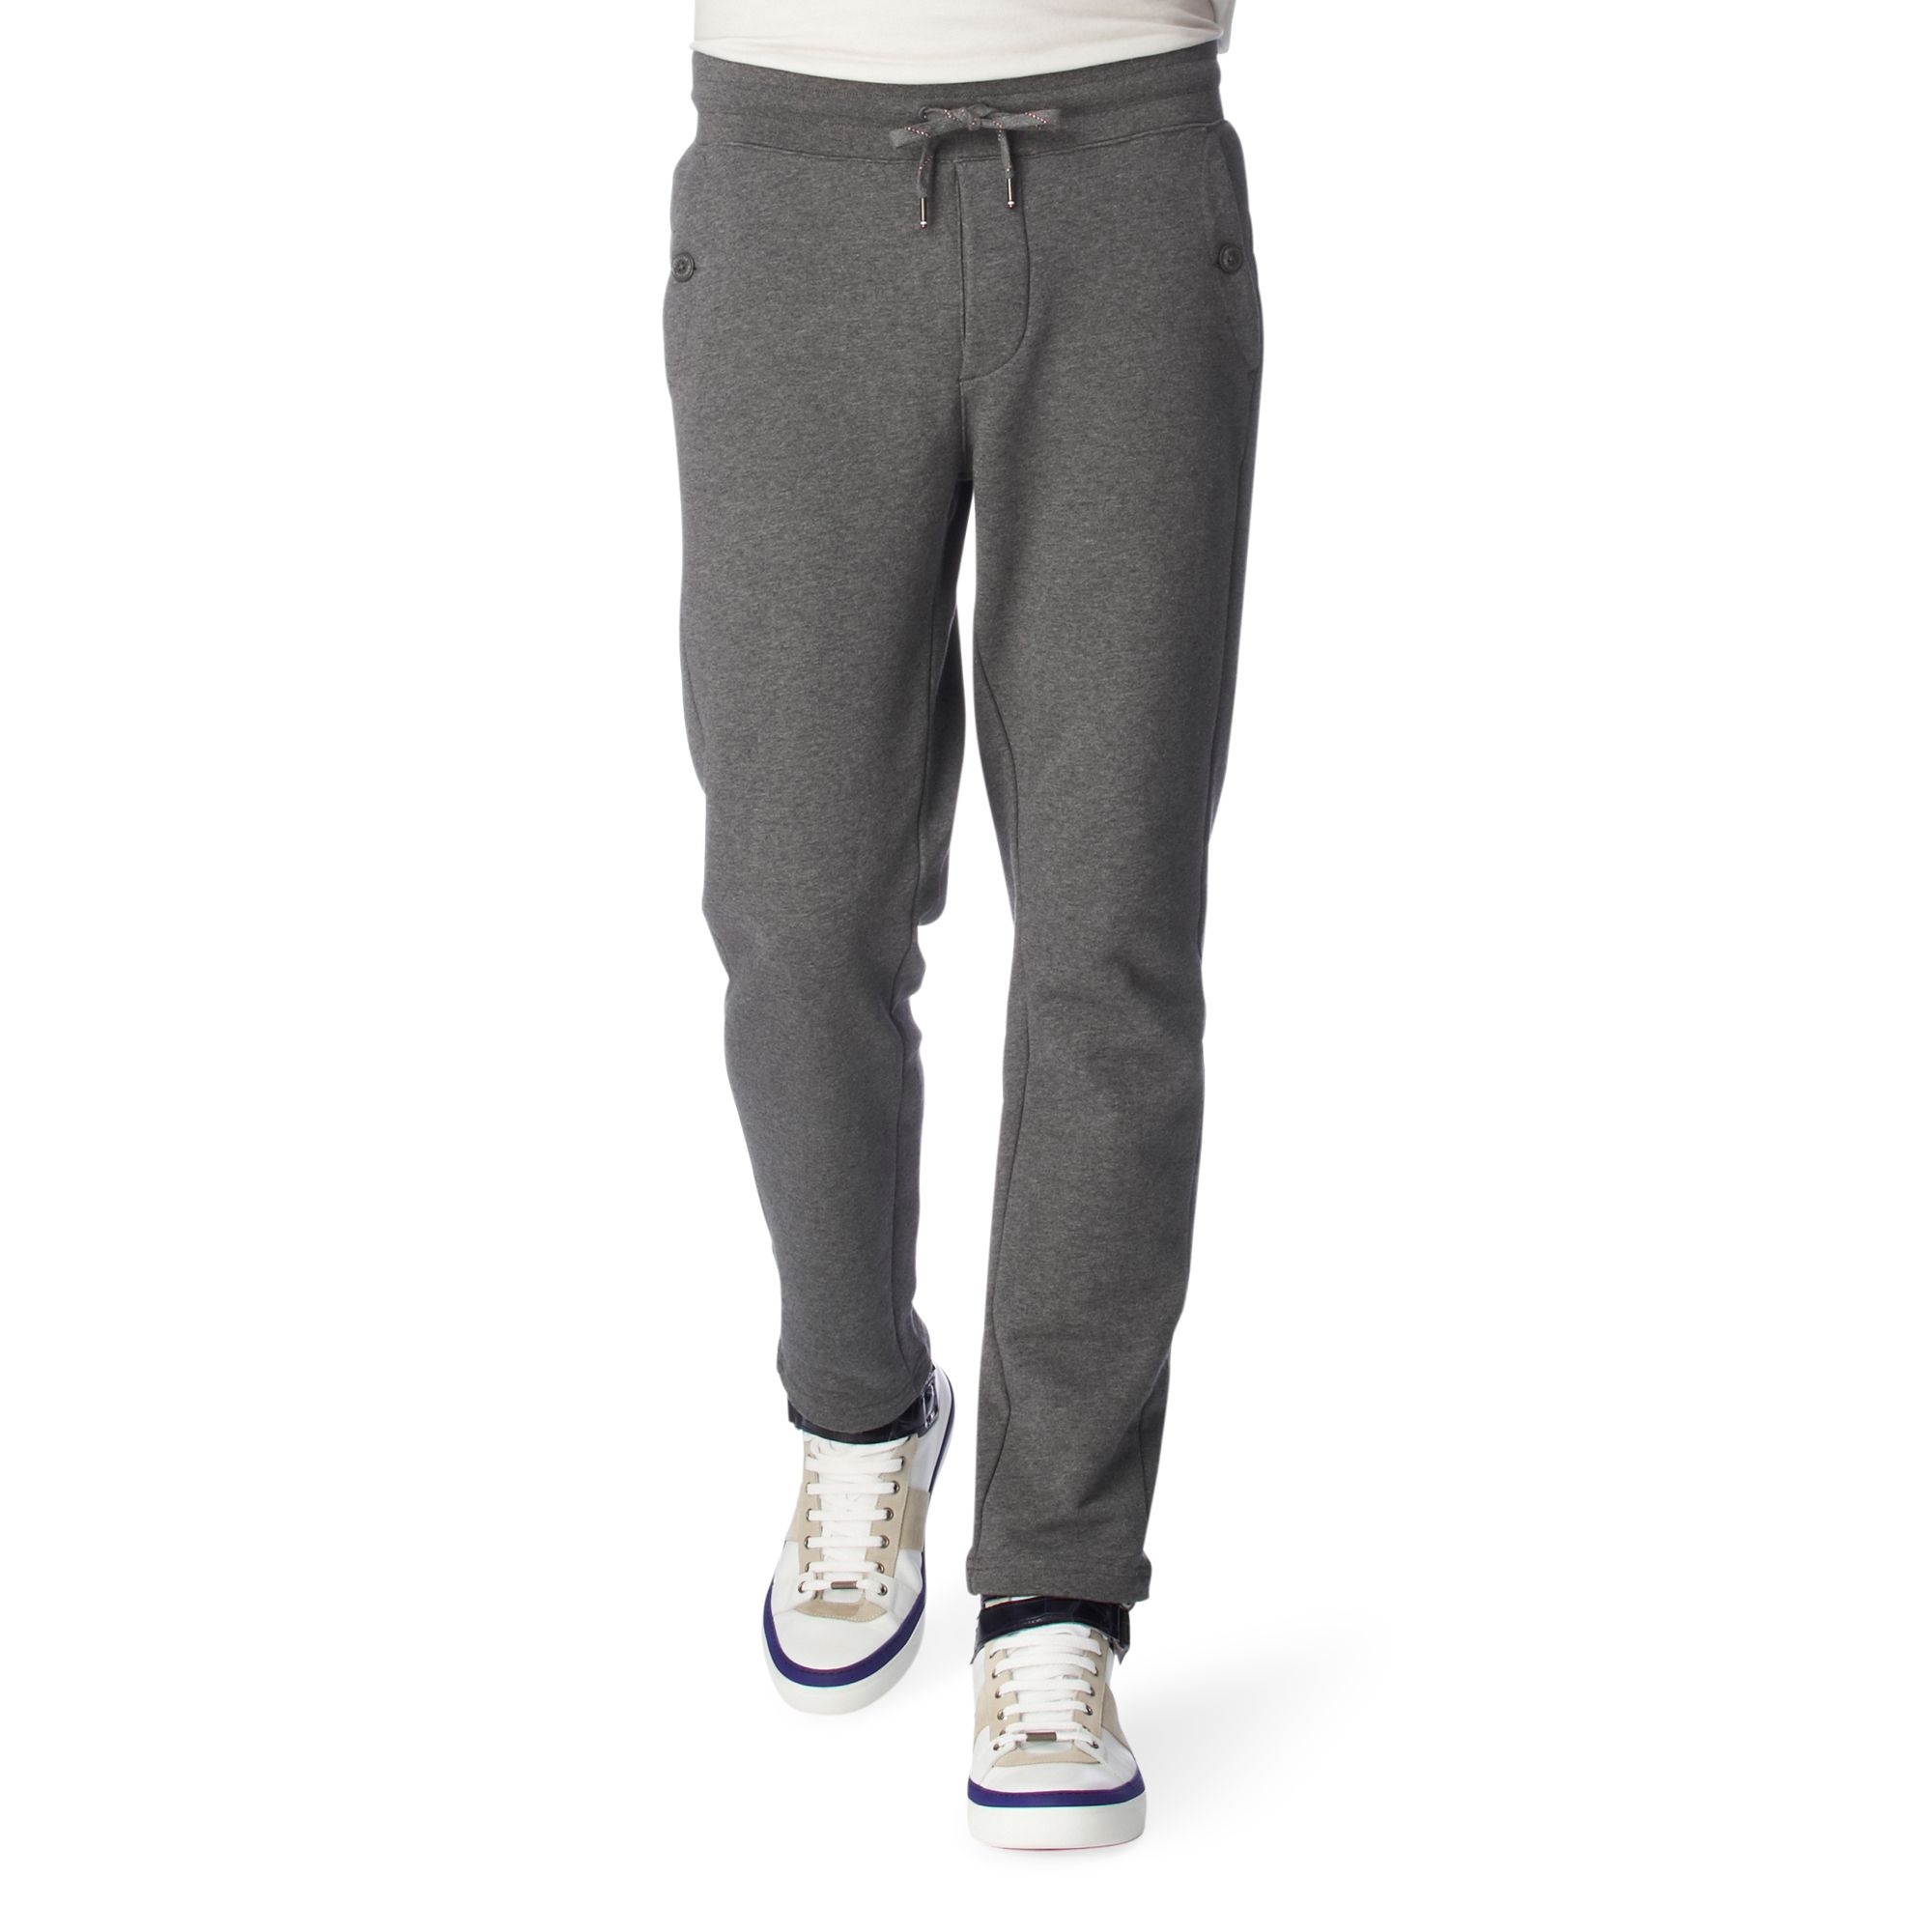 88f288f2f022 Moncler Jogging Bottoms in Gray for Men - Lyst